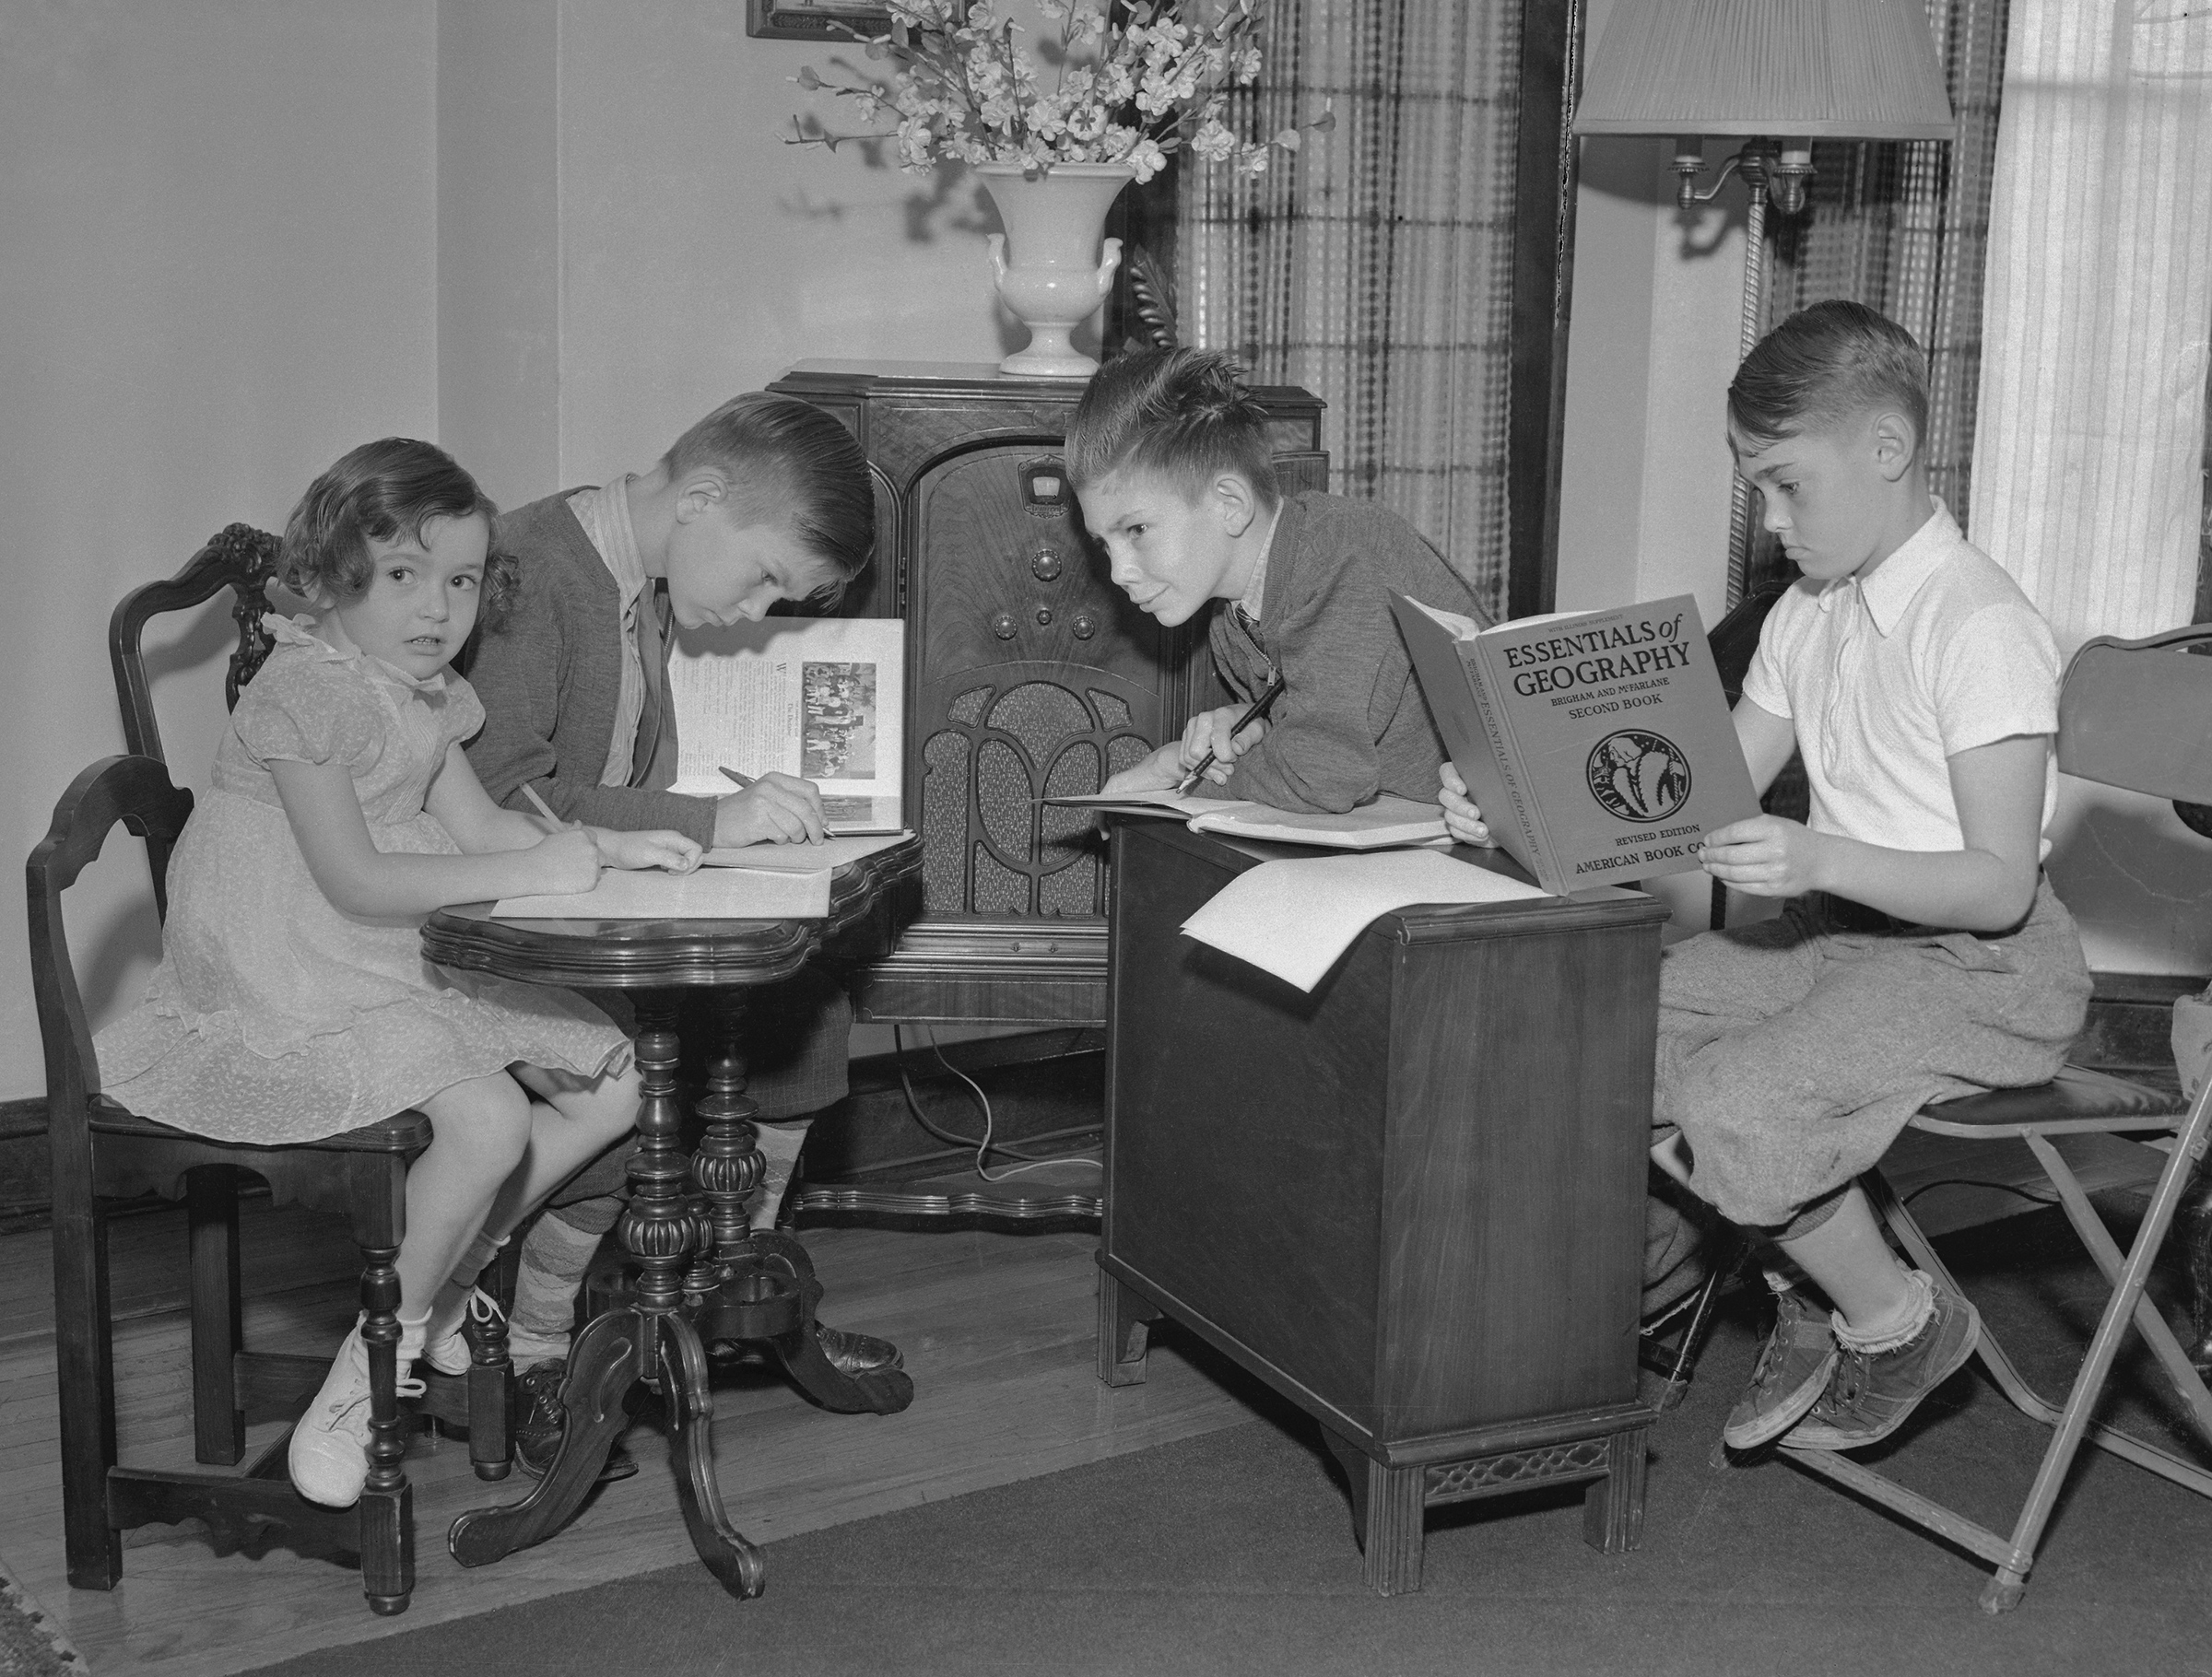 Due to the Infantile Paralysis Epidemic in Chicago, the reopening of schools was delayed. Students listen to a pre-arranged course of study via the radio stations, in accordance with a schedule drawn up by several school principals, on Sept 13, 1937